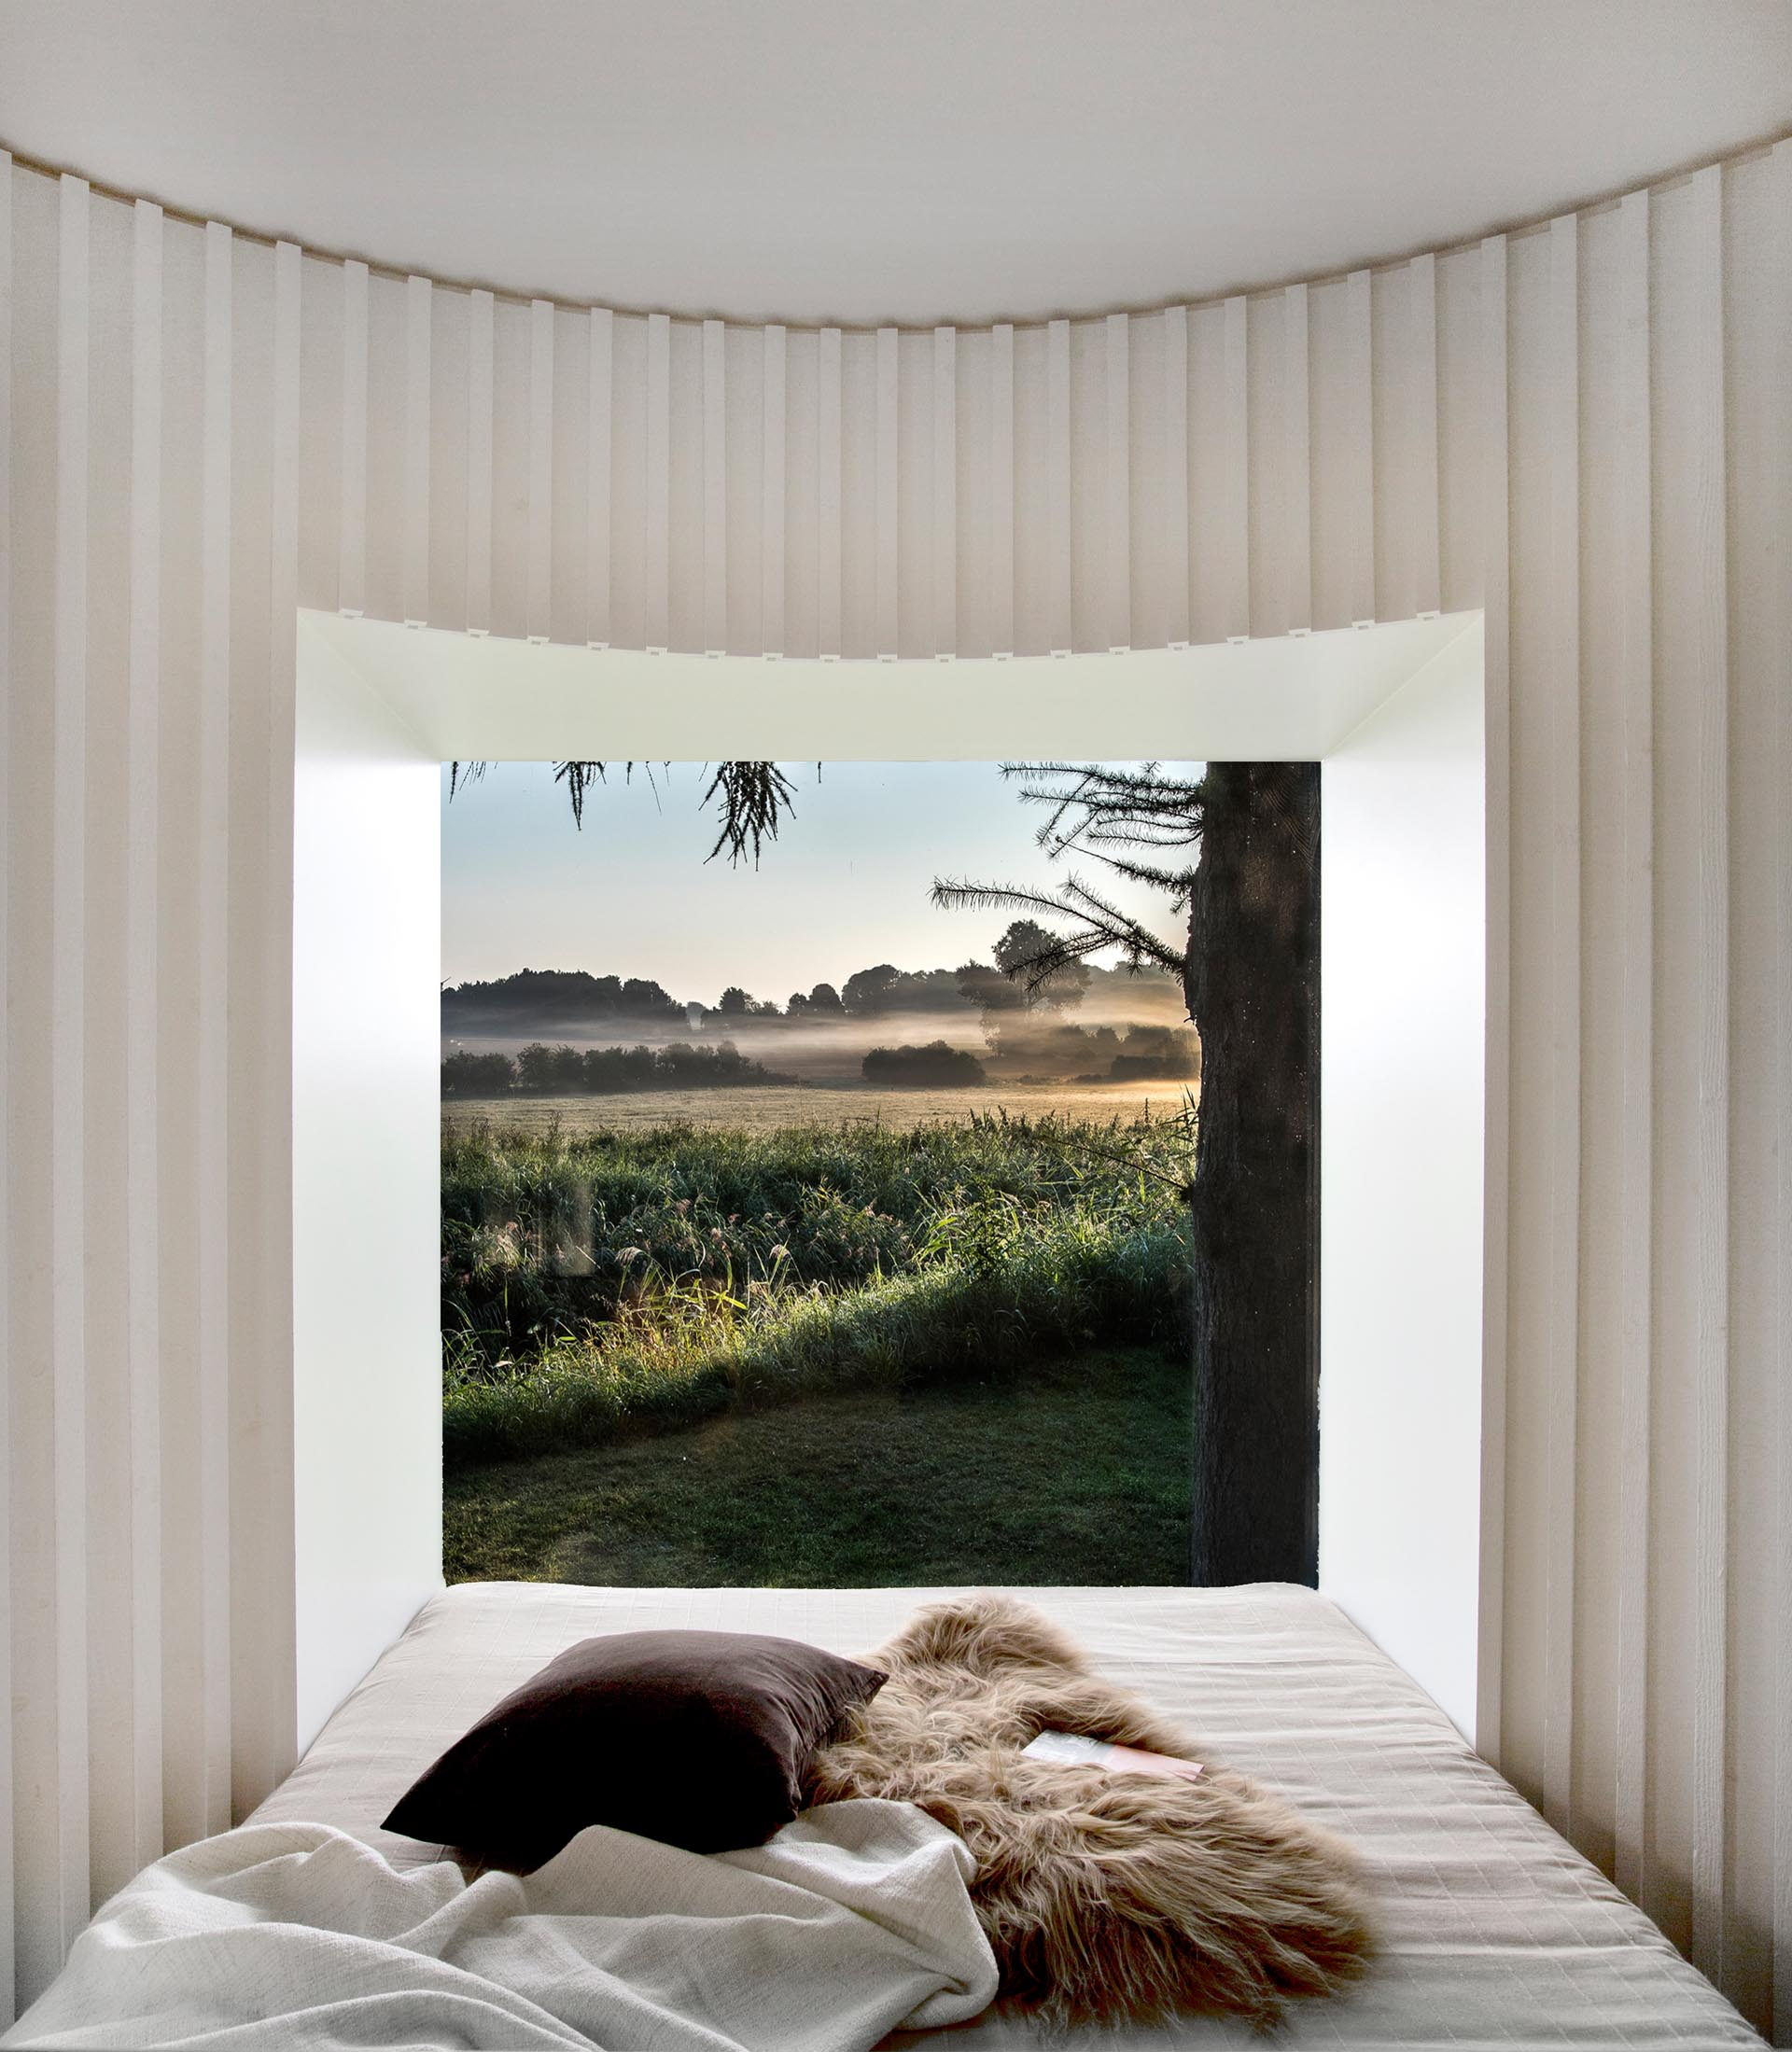 In this curved bedroom, a desk is positioned behind the headboard, while at the end of the is a picture window for unobstructed views.